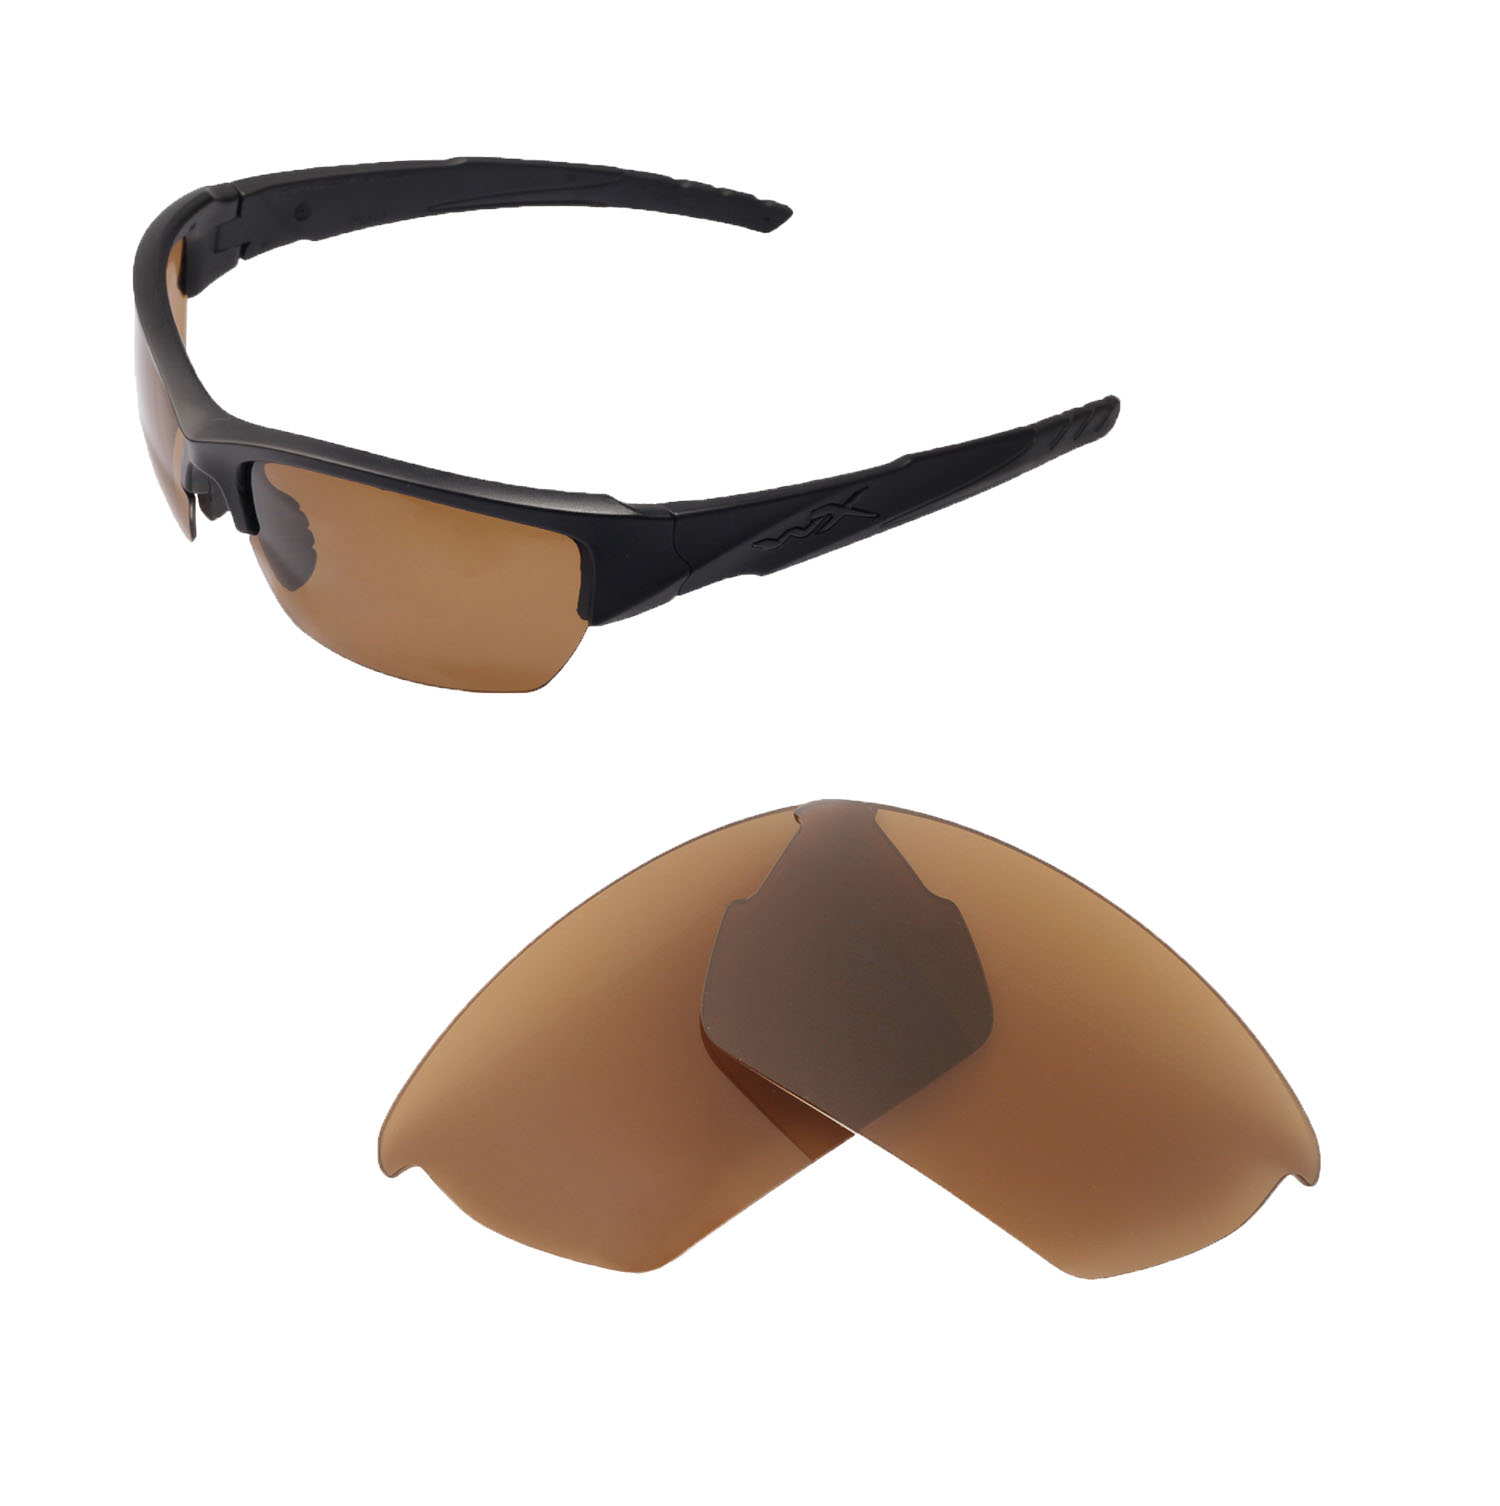 03e43dcf9b Details about Walleva Polarized Brown Replacement Lenses For Wiley X Valor